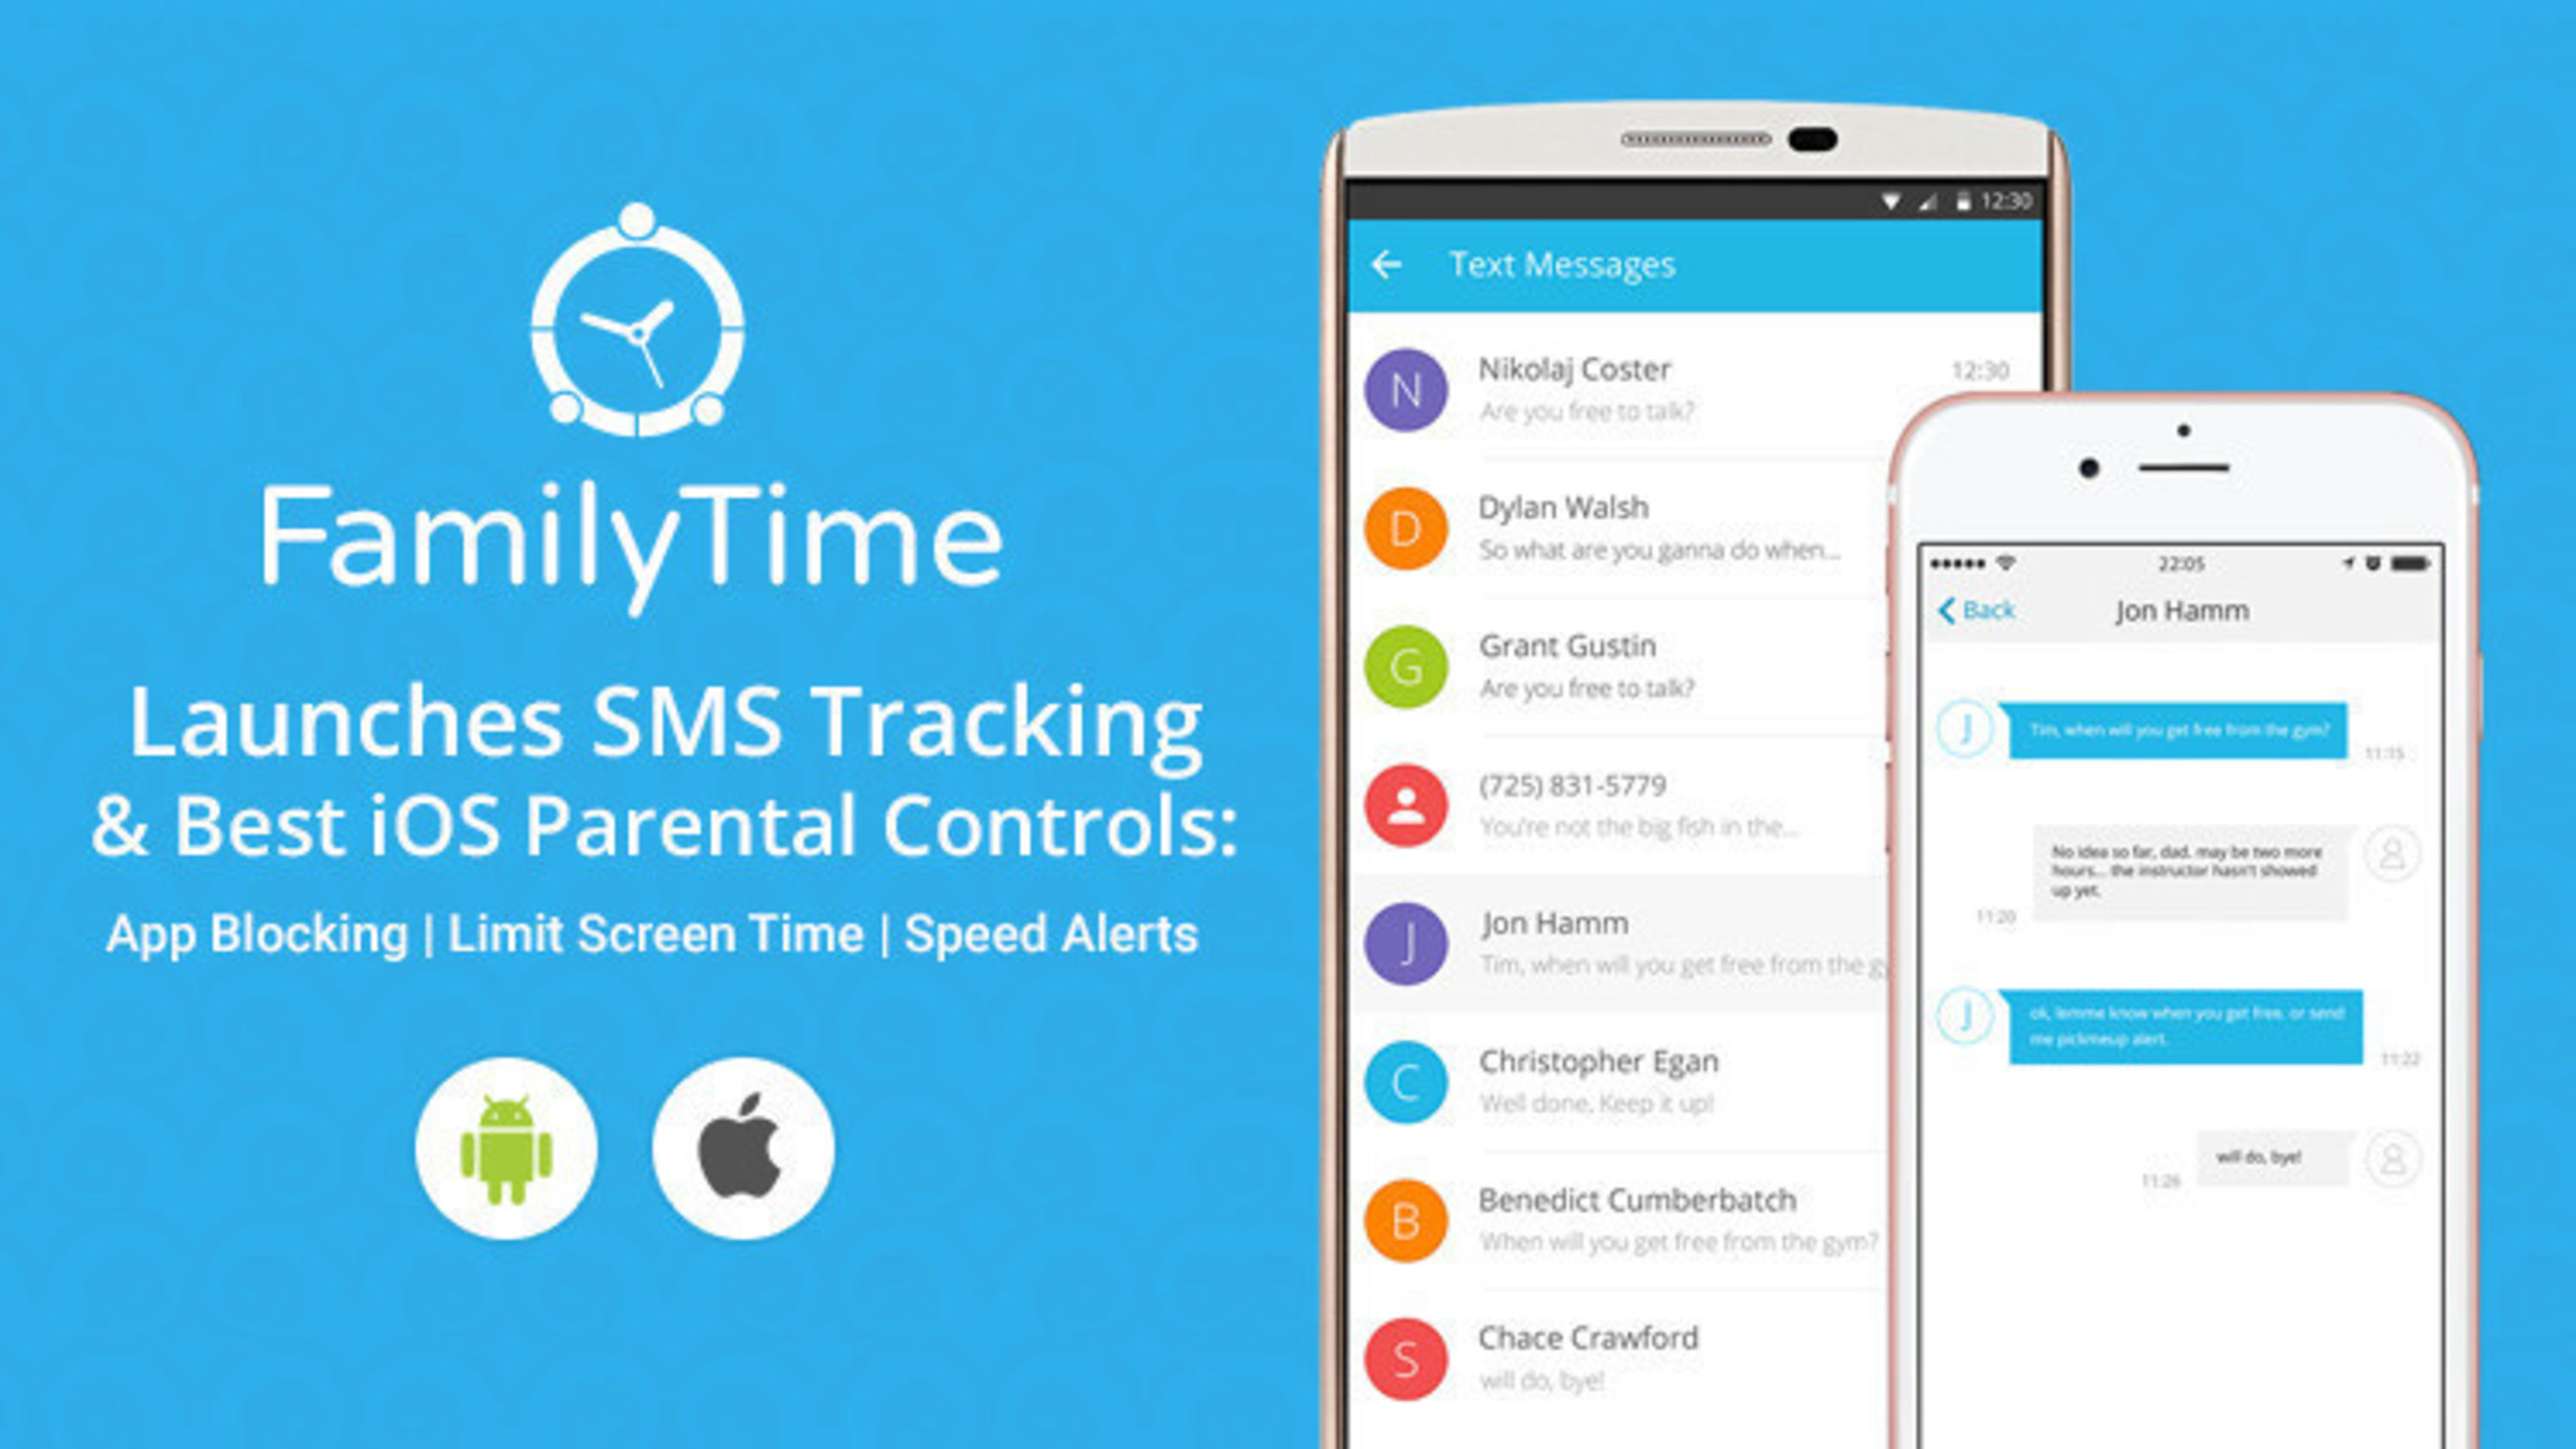 Leading Parental Control App Makers FamilyTime Launches SMS Tracking on Android and Offers Best iOS Parental Controls